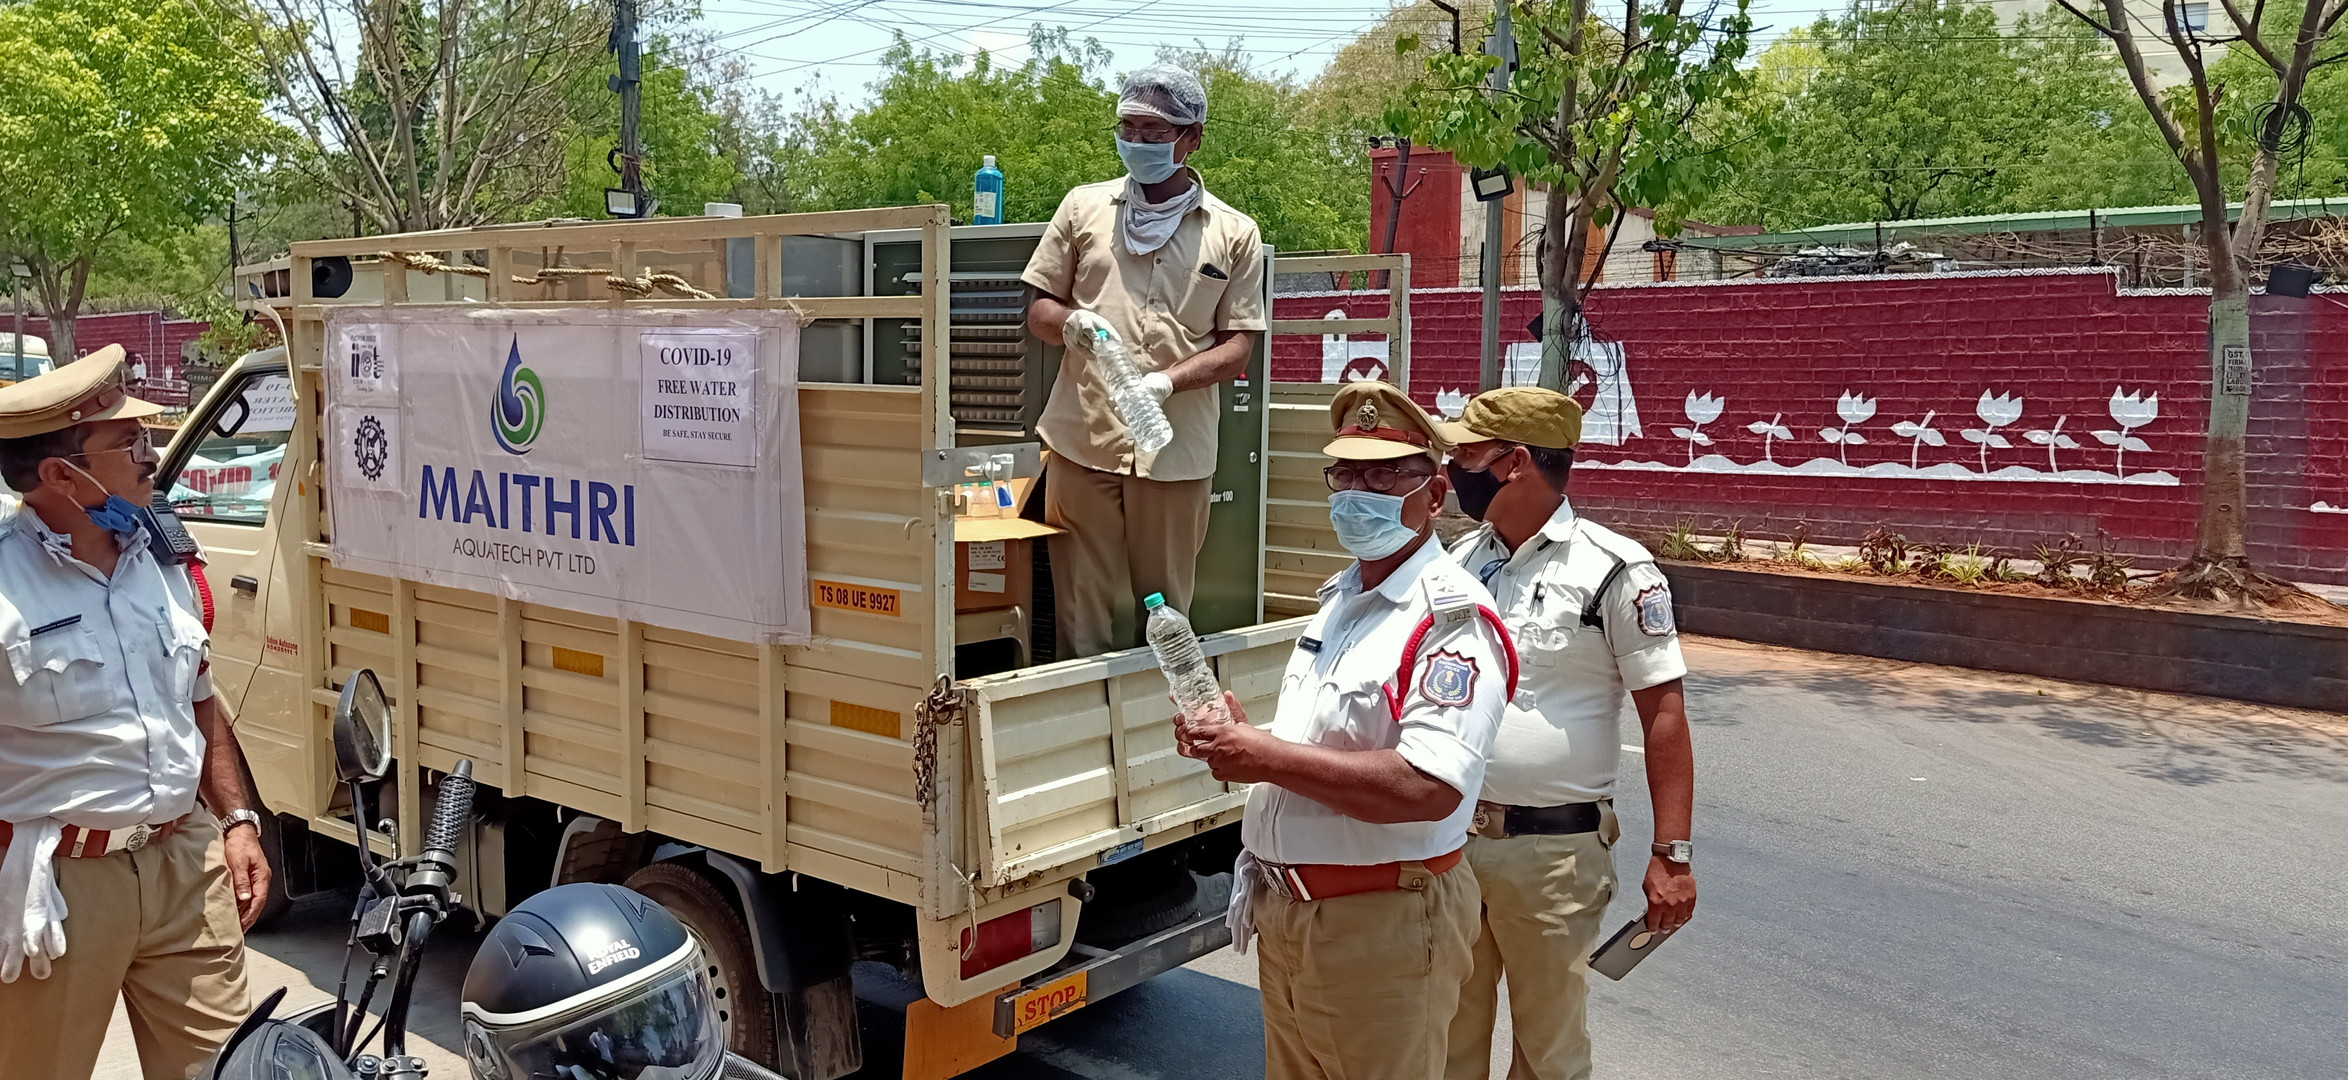 Maithri Aquatech has supplied Hyderabad's First Responders with the clean mineral enriched potable water during the COVID 19.